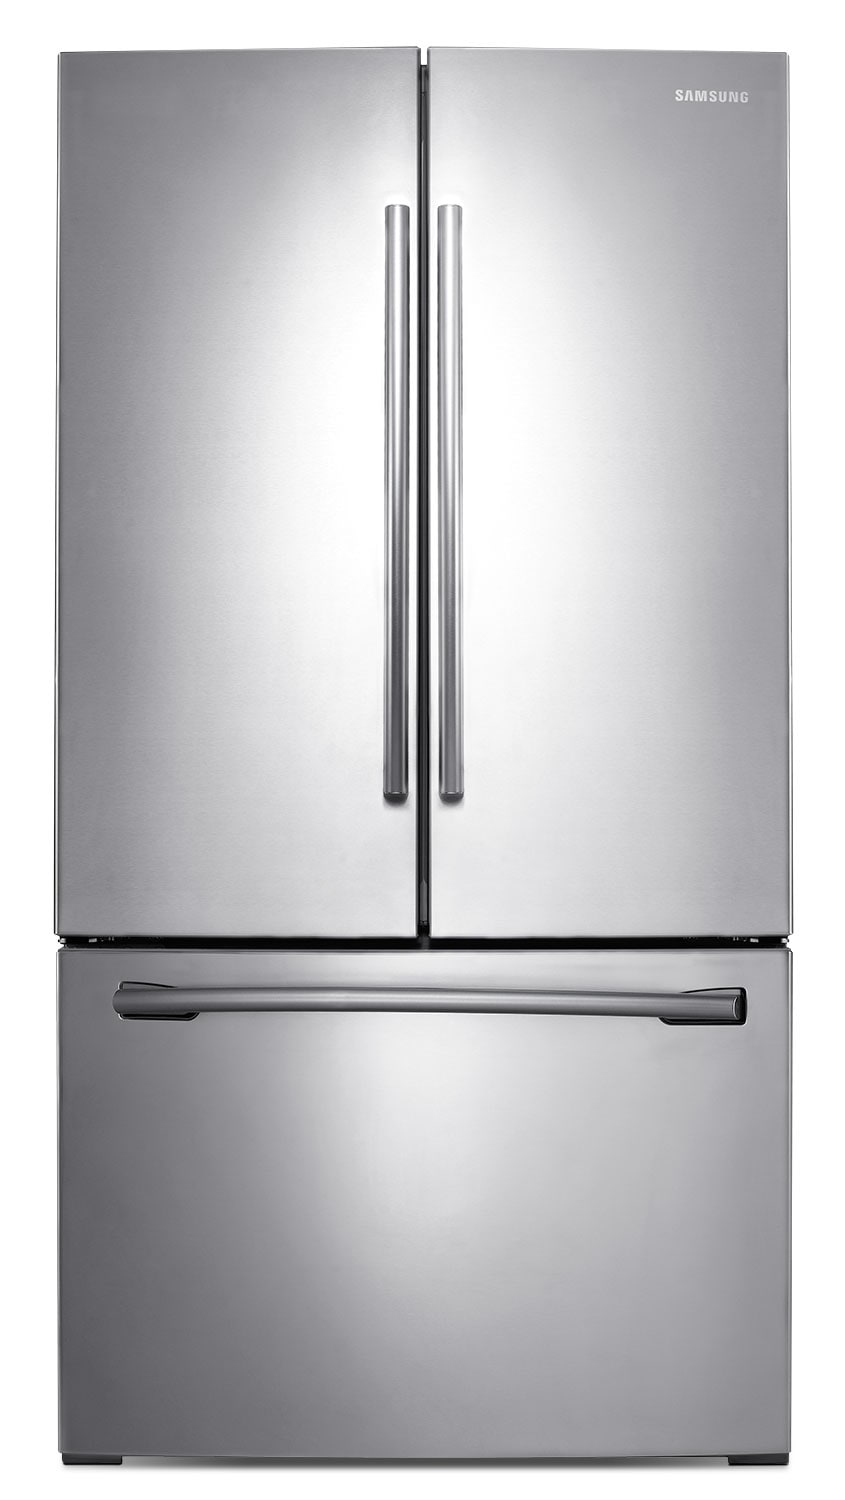 Samsung Stainless Steel French Door Refrigerator (25.5 Cu. Ft.) - RF26HFENDSR/AA